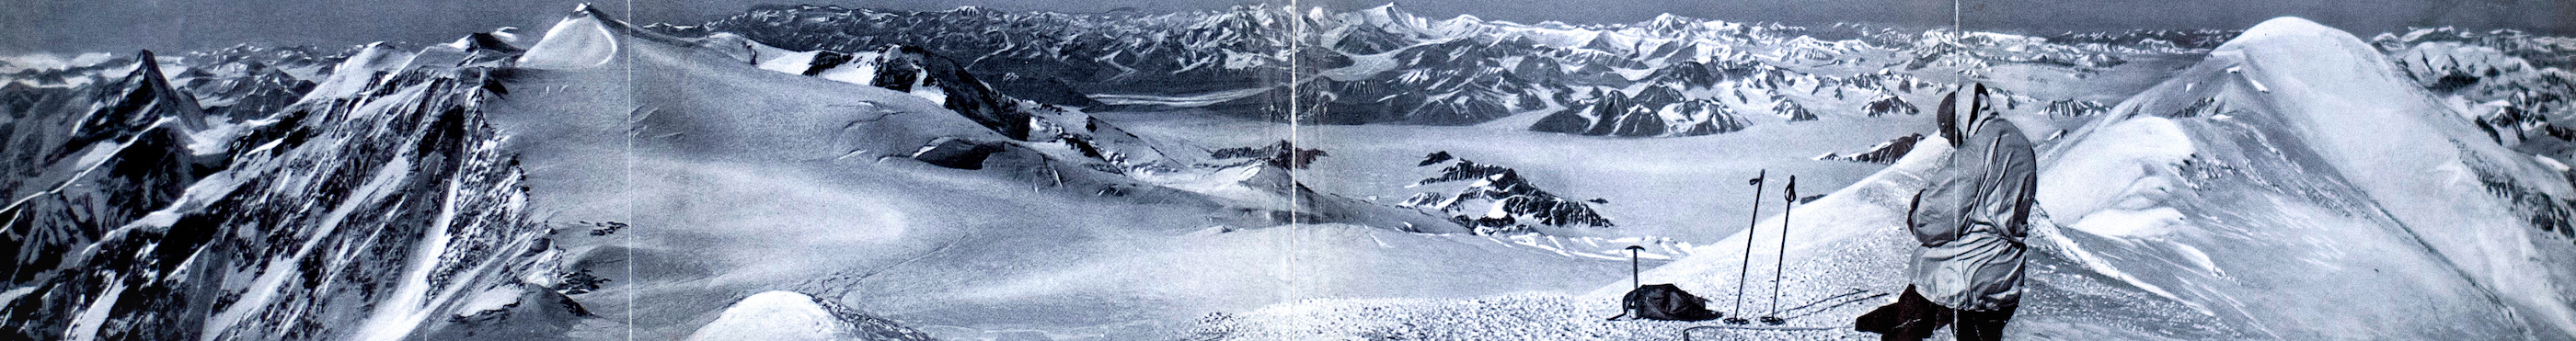 1950 Summit Panoramic Photo-2